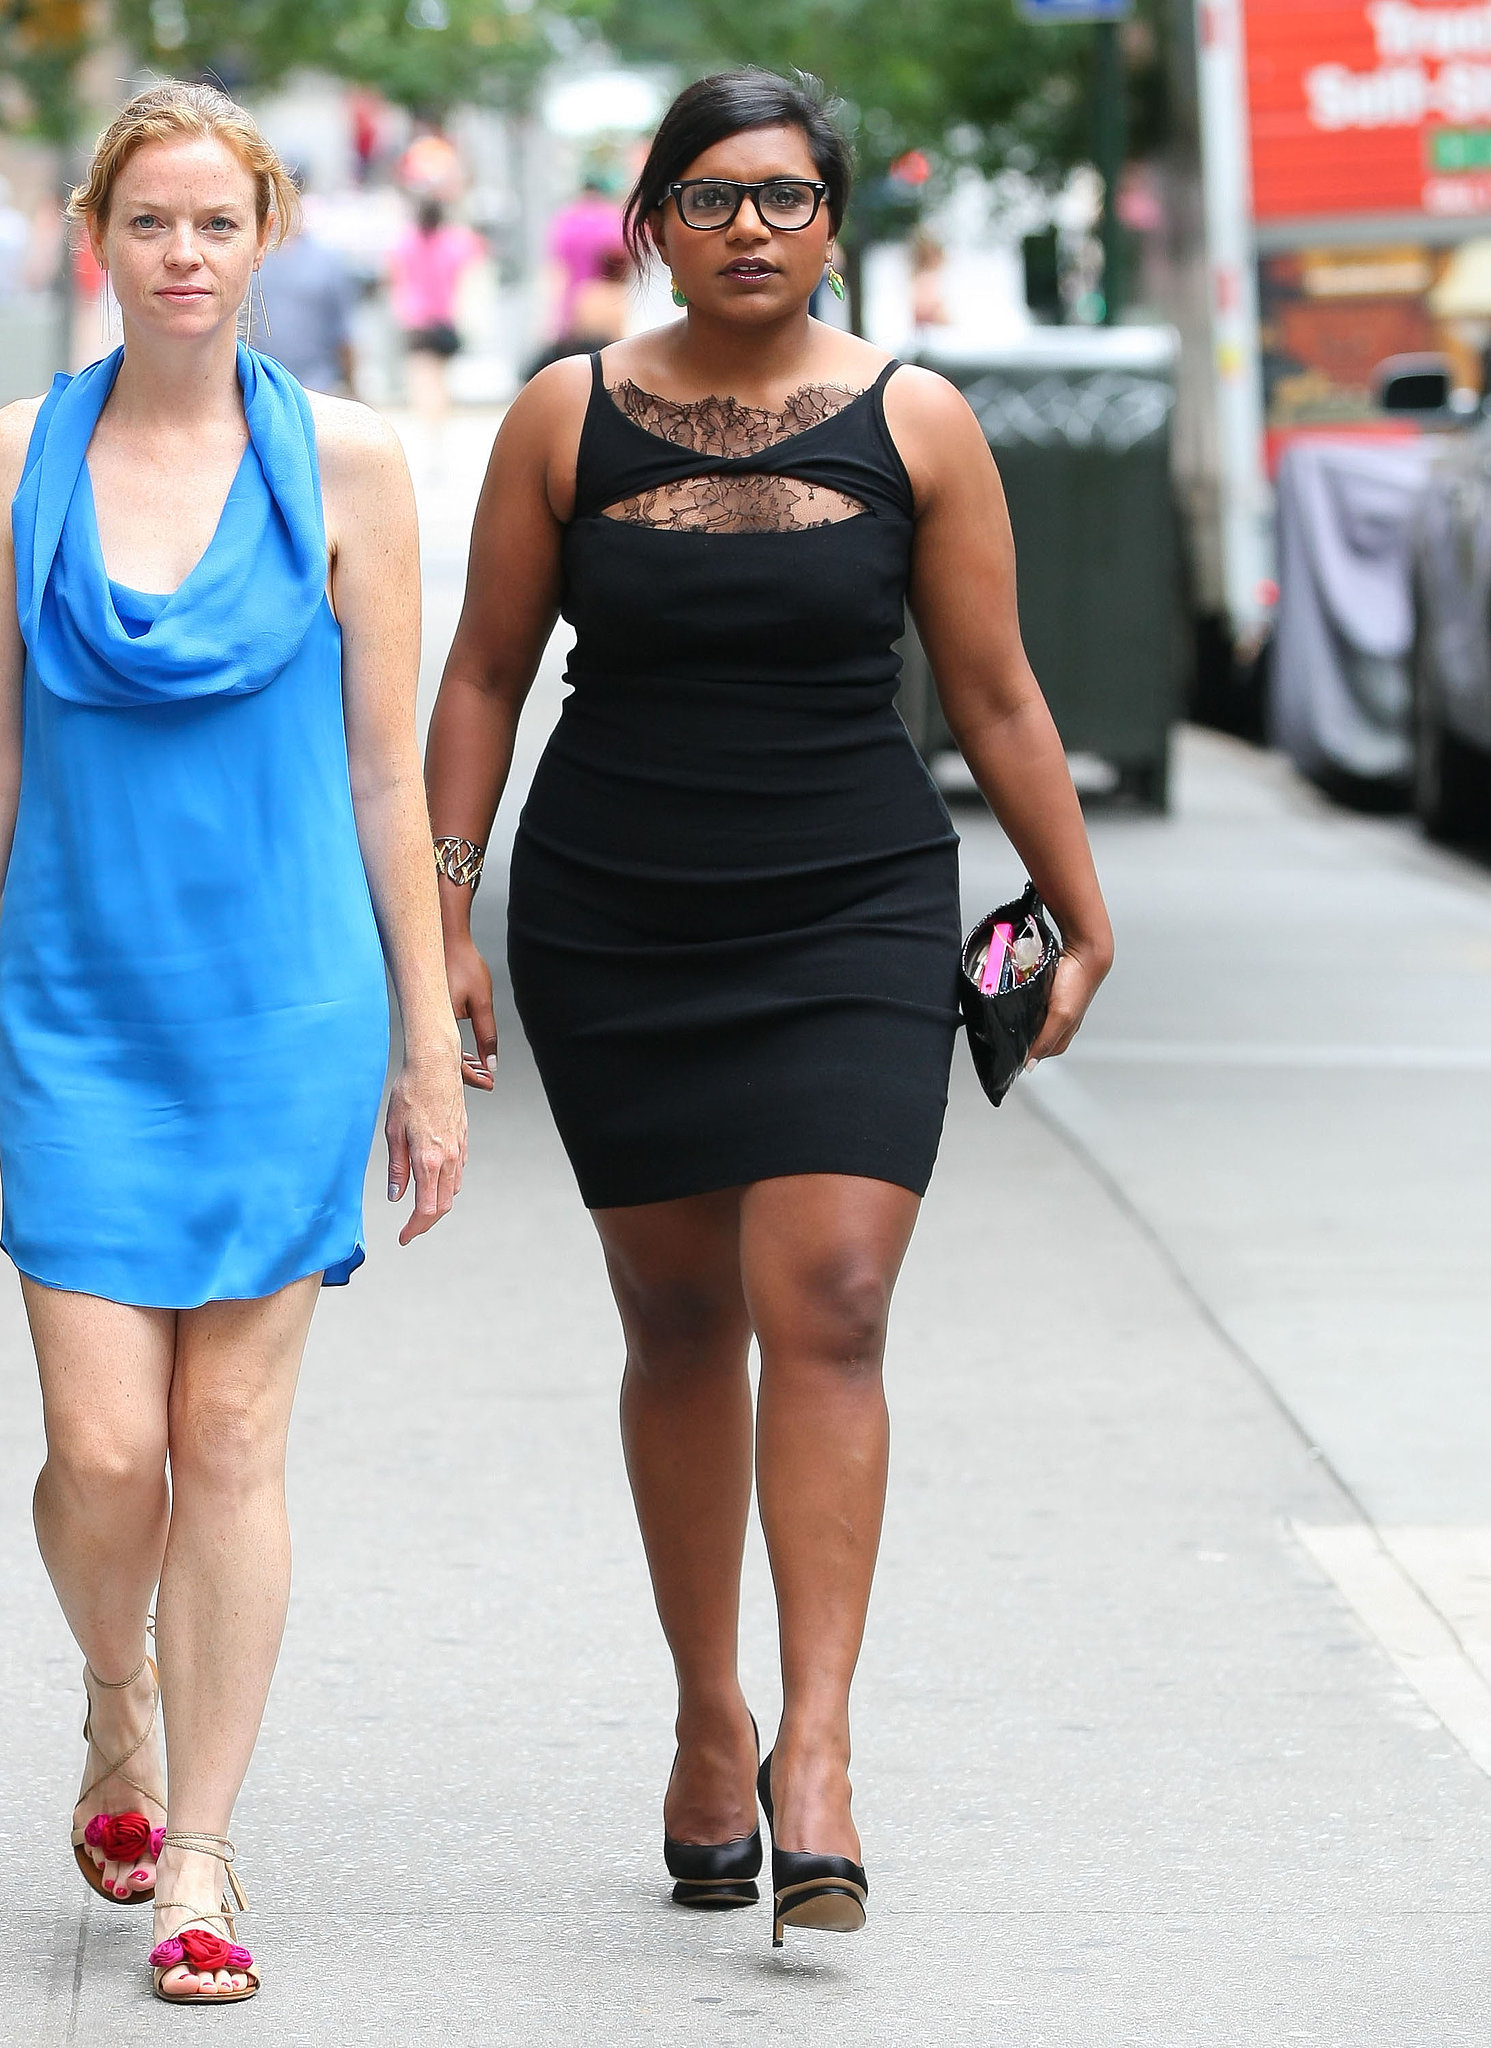 Mindy Kaling attended Ellie Kemper and Michael Koman's wedding in NYC in July 2012.